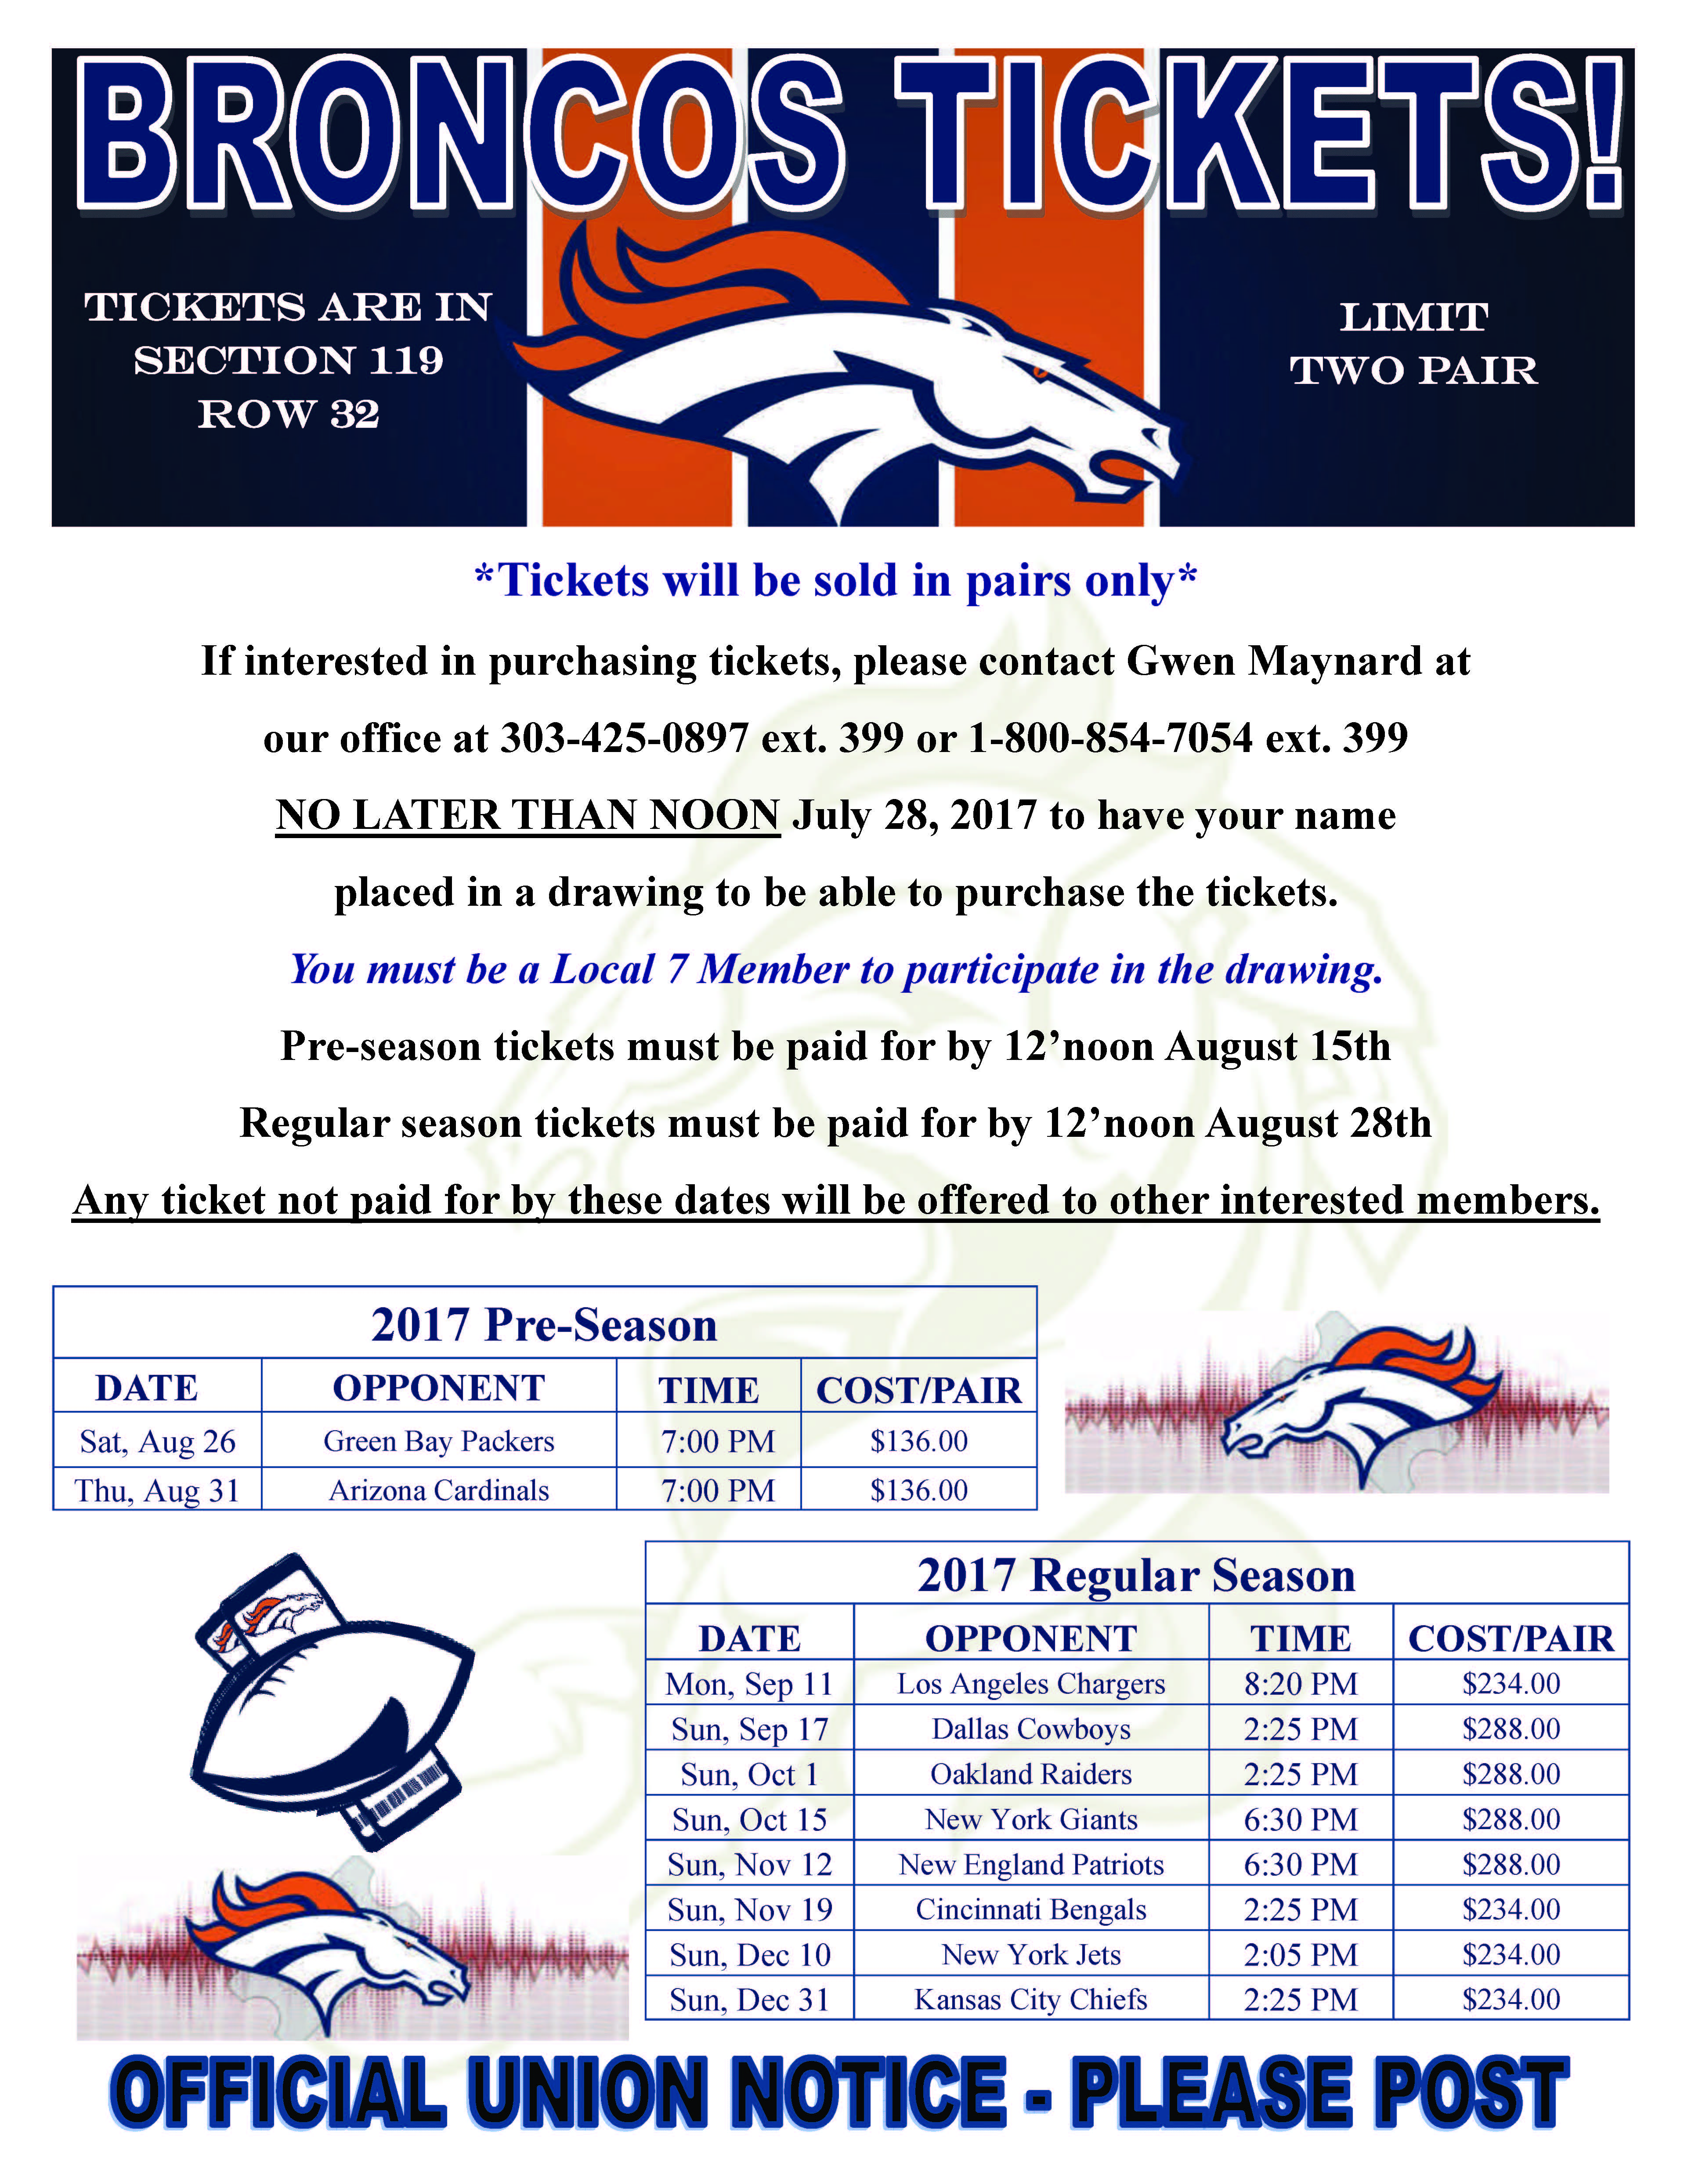 Looking for Broncos Tickets?